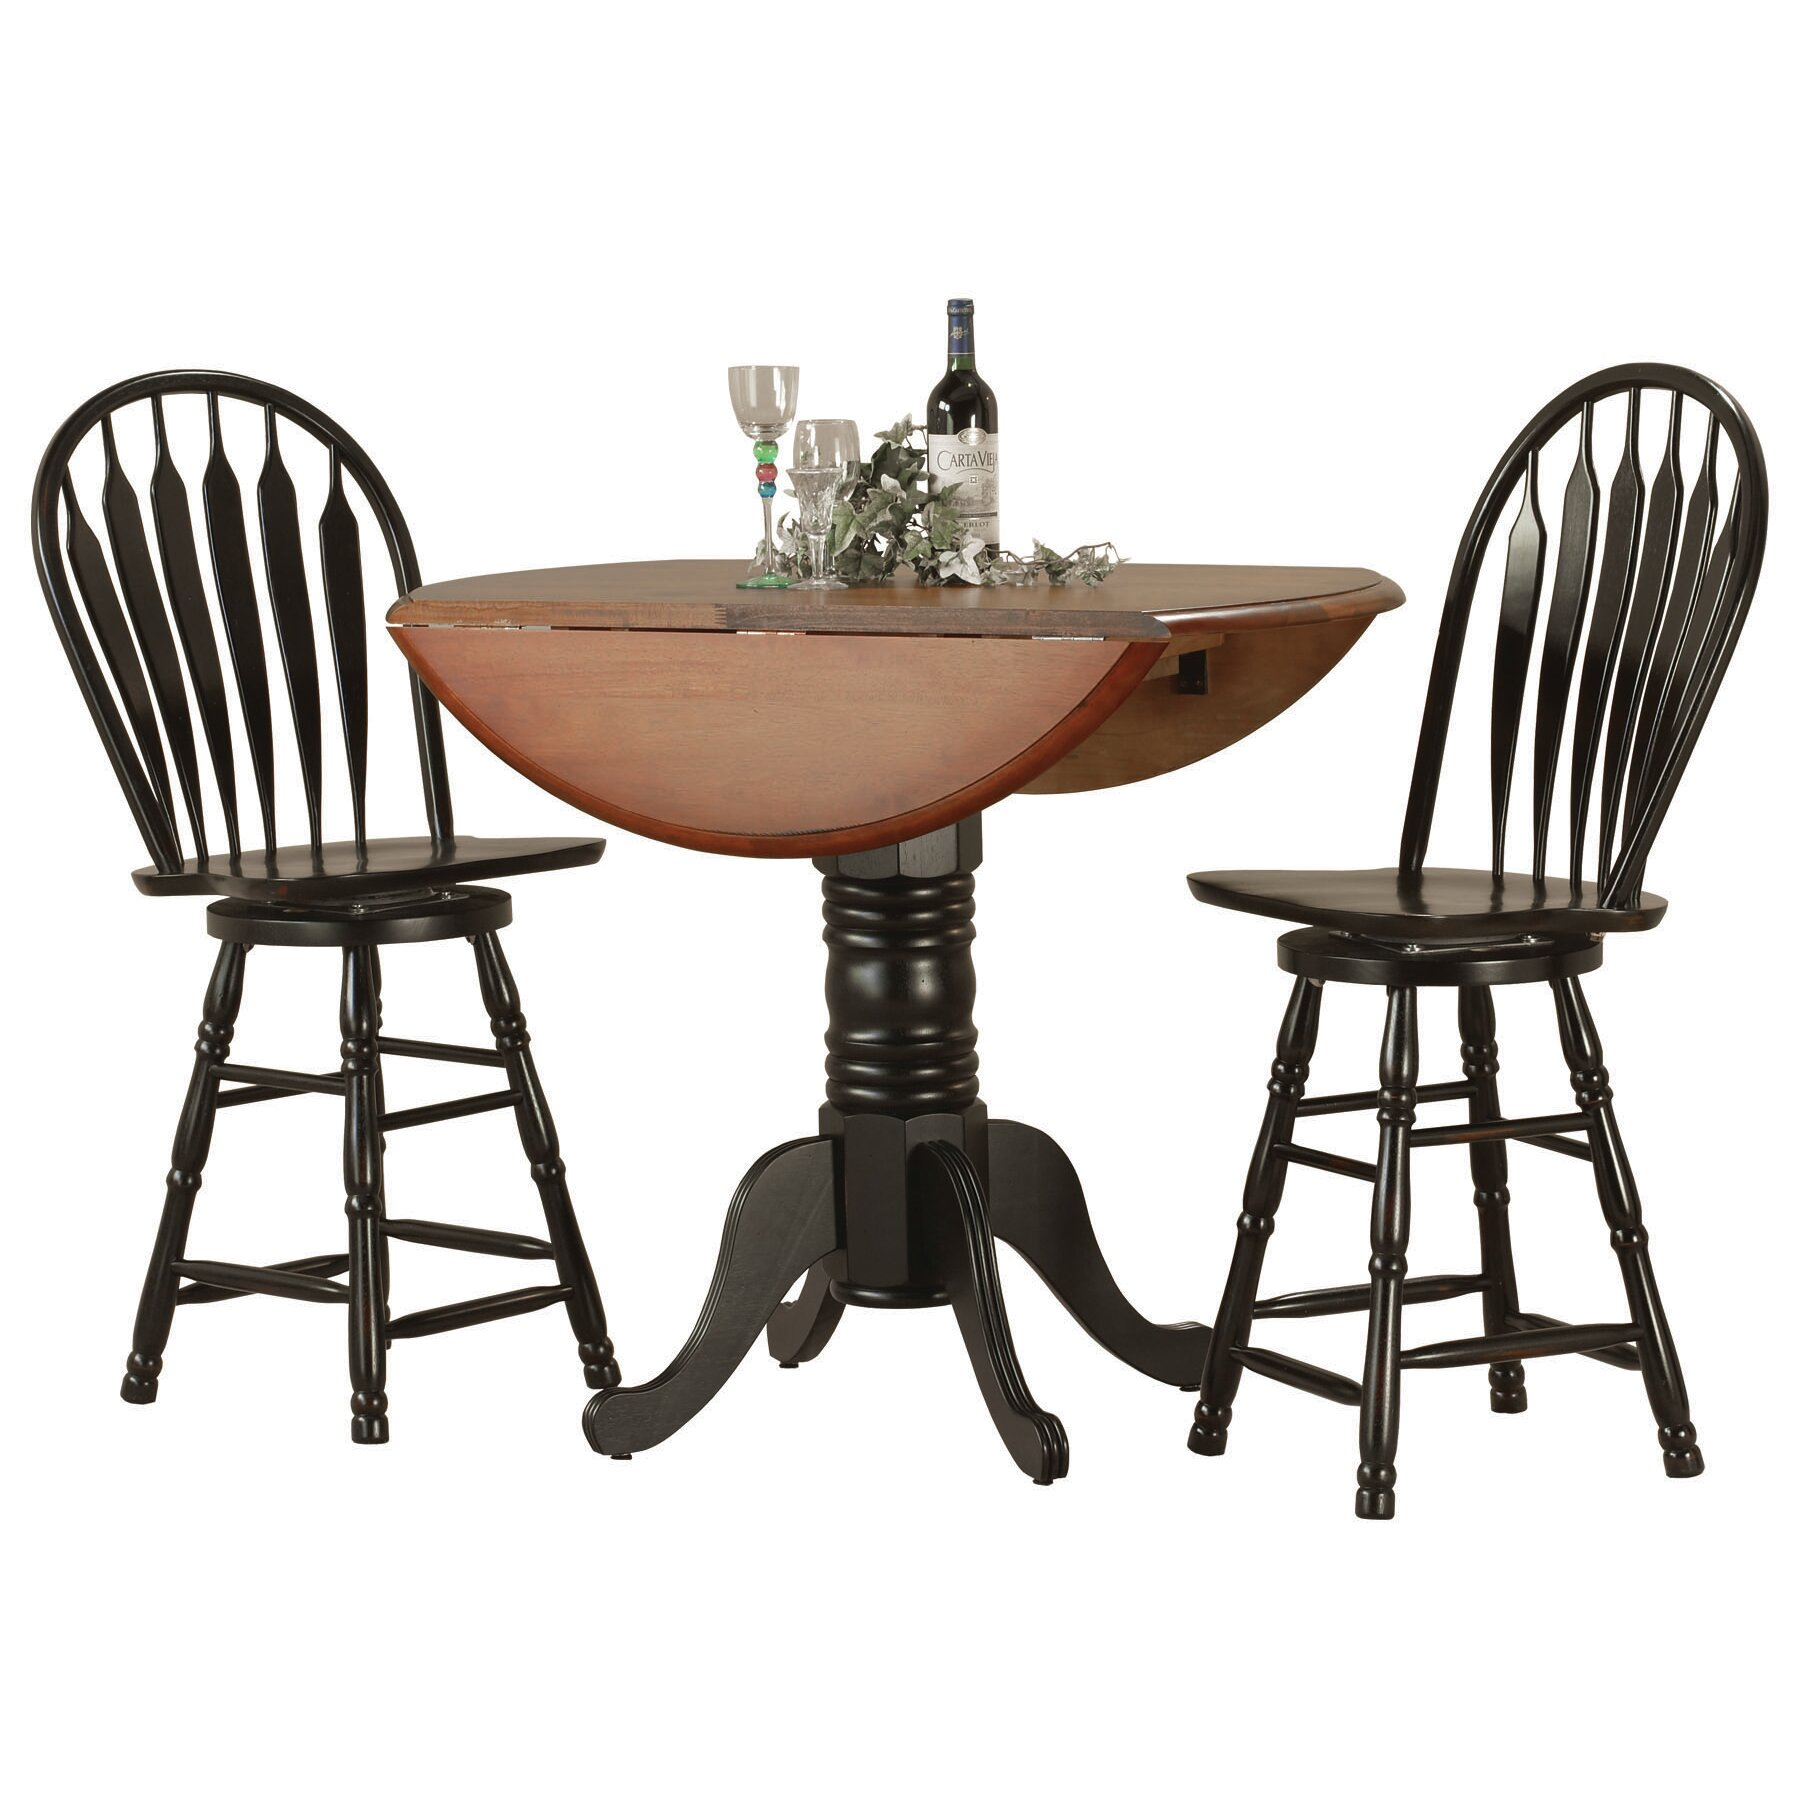 sunset trading sunset selections 3 piece pub table set reviews wayfair. Black Bedroom Furniture Sets. Home Design Ideas